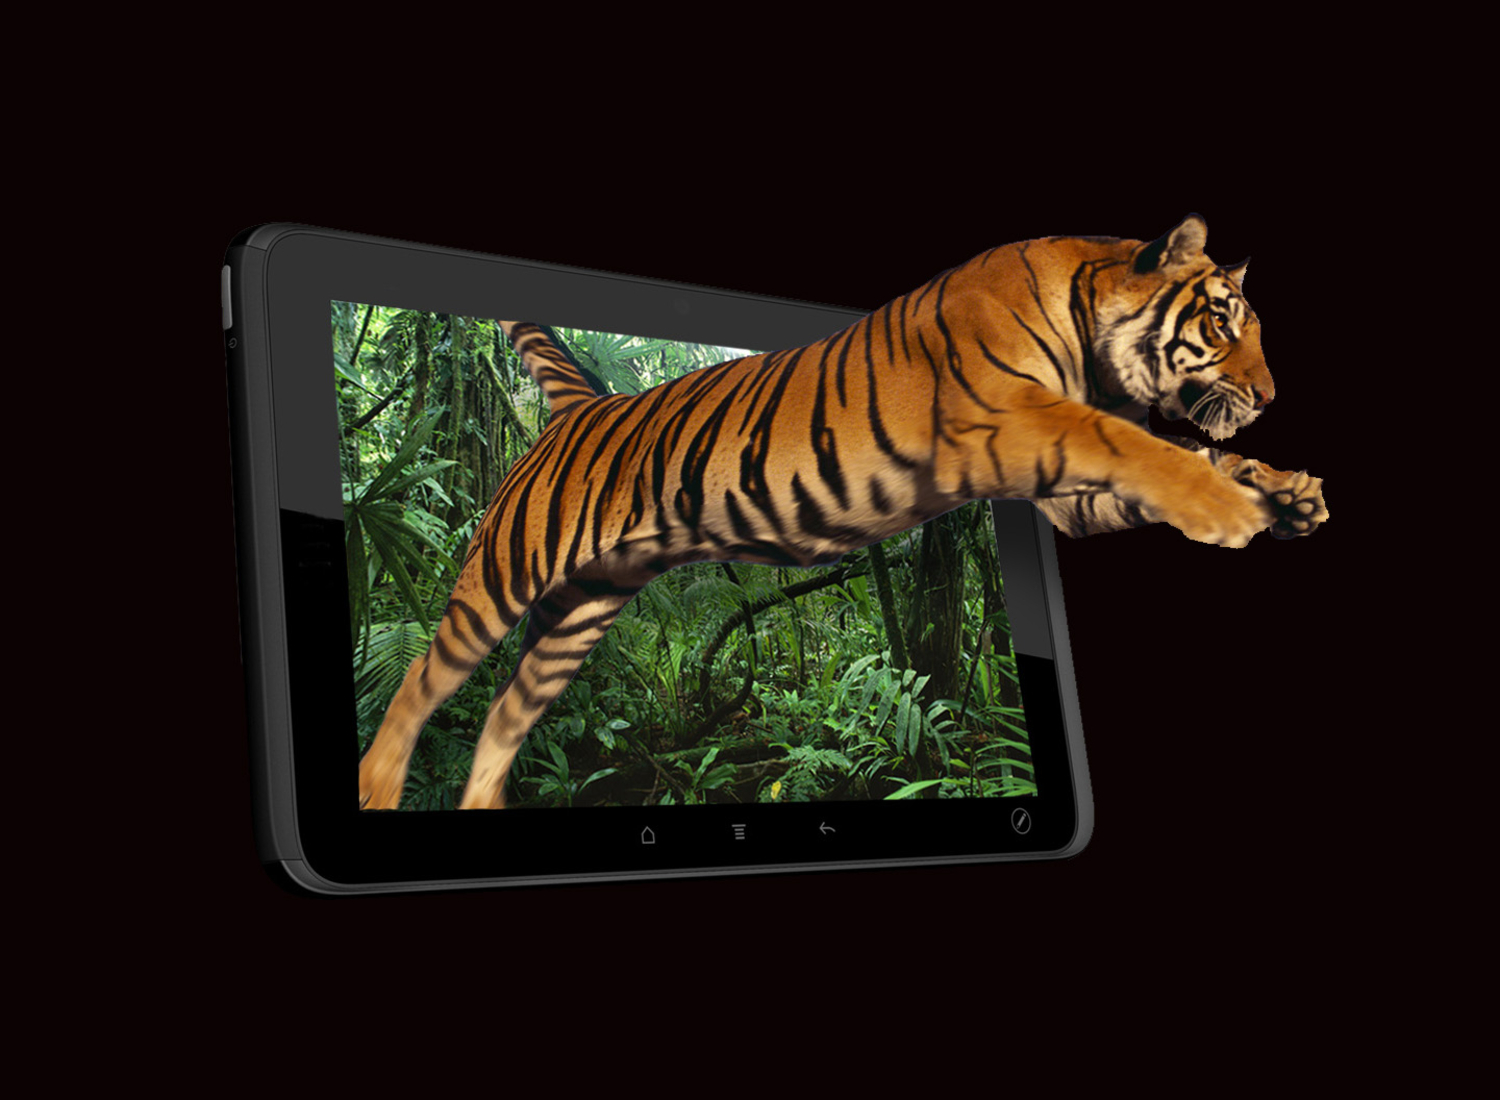 3D Display On Your Tablet